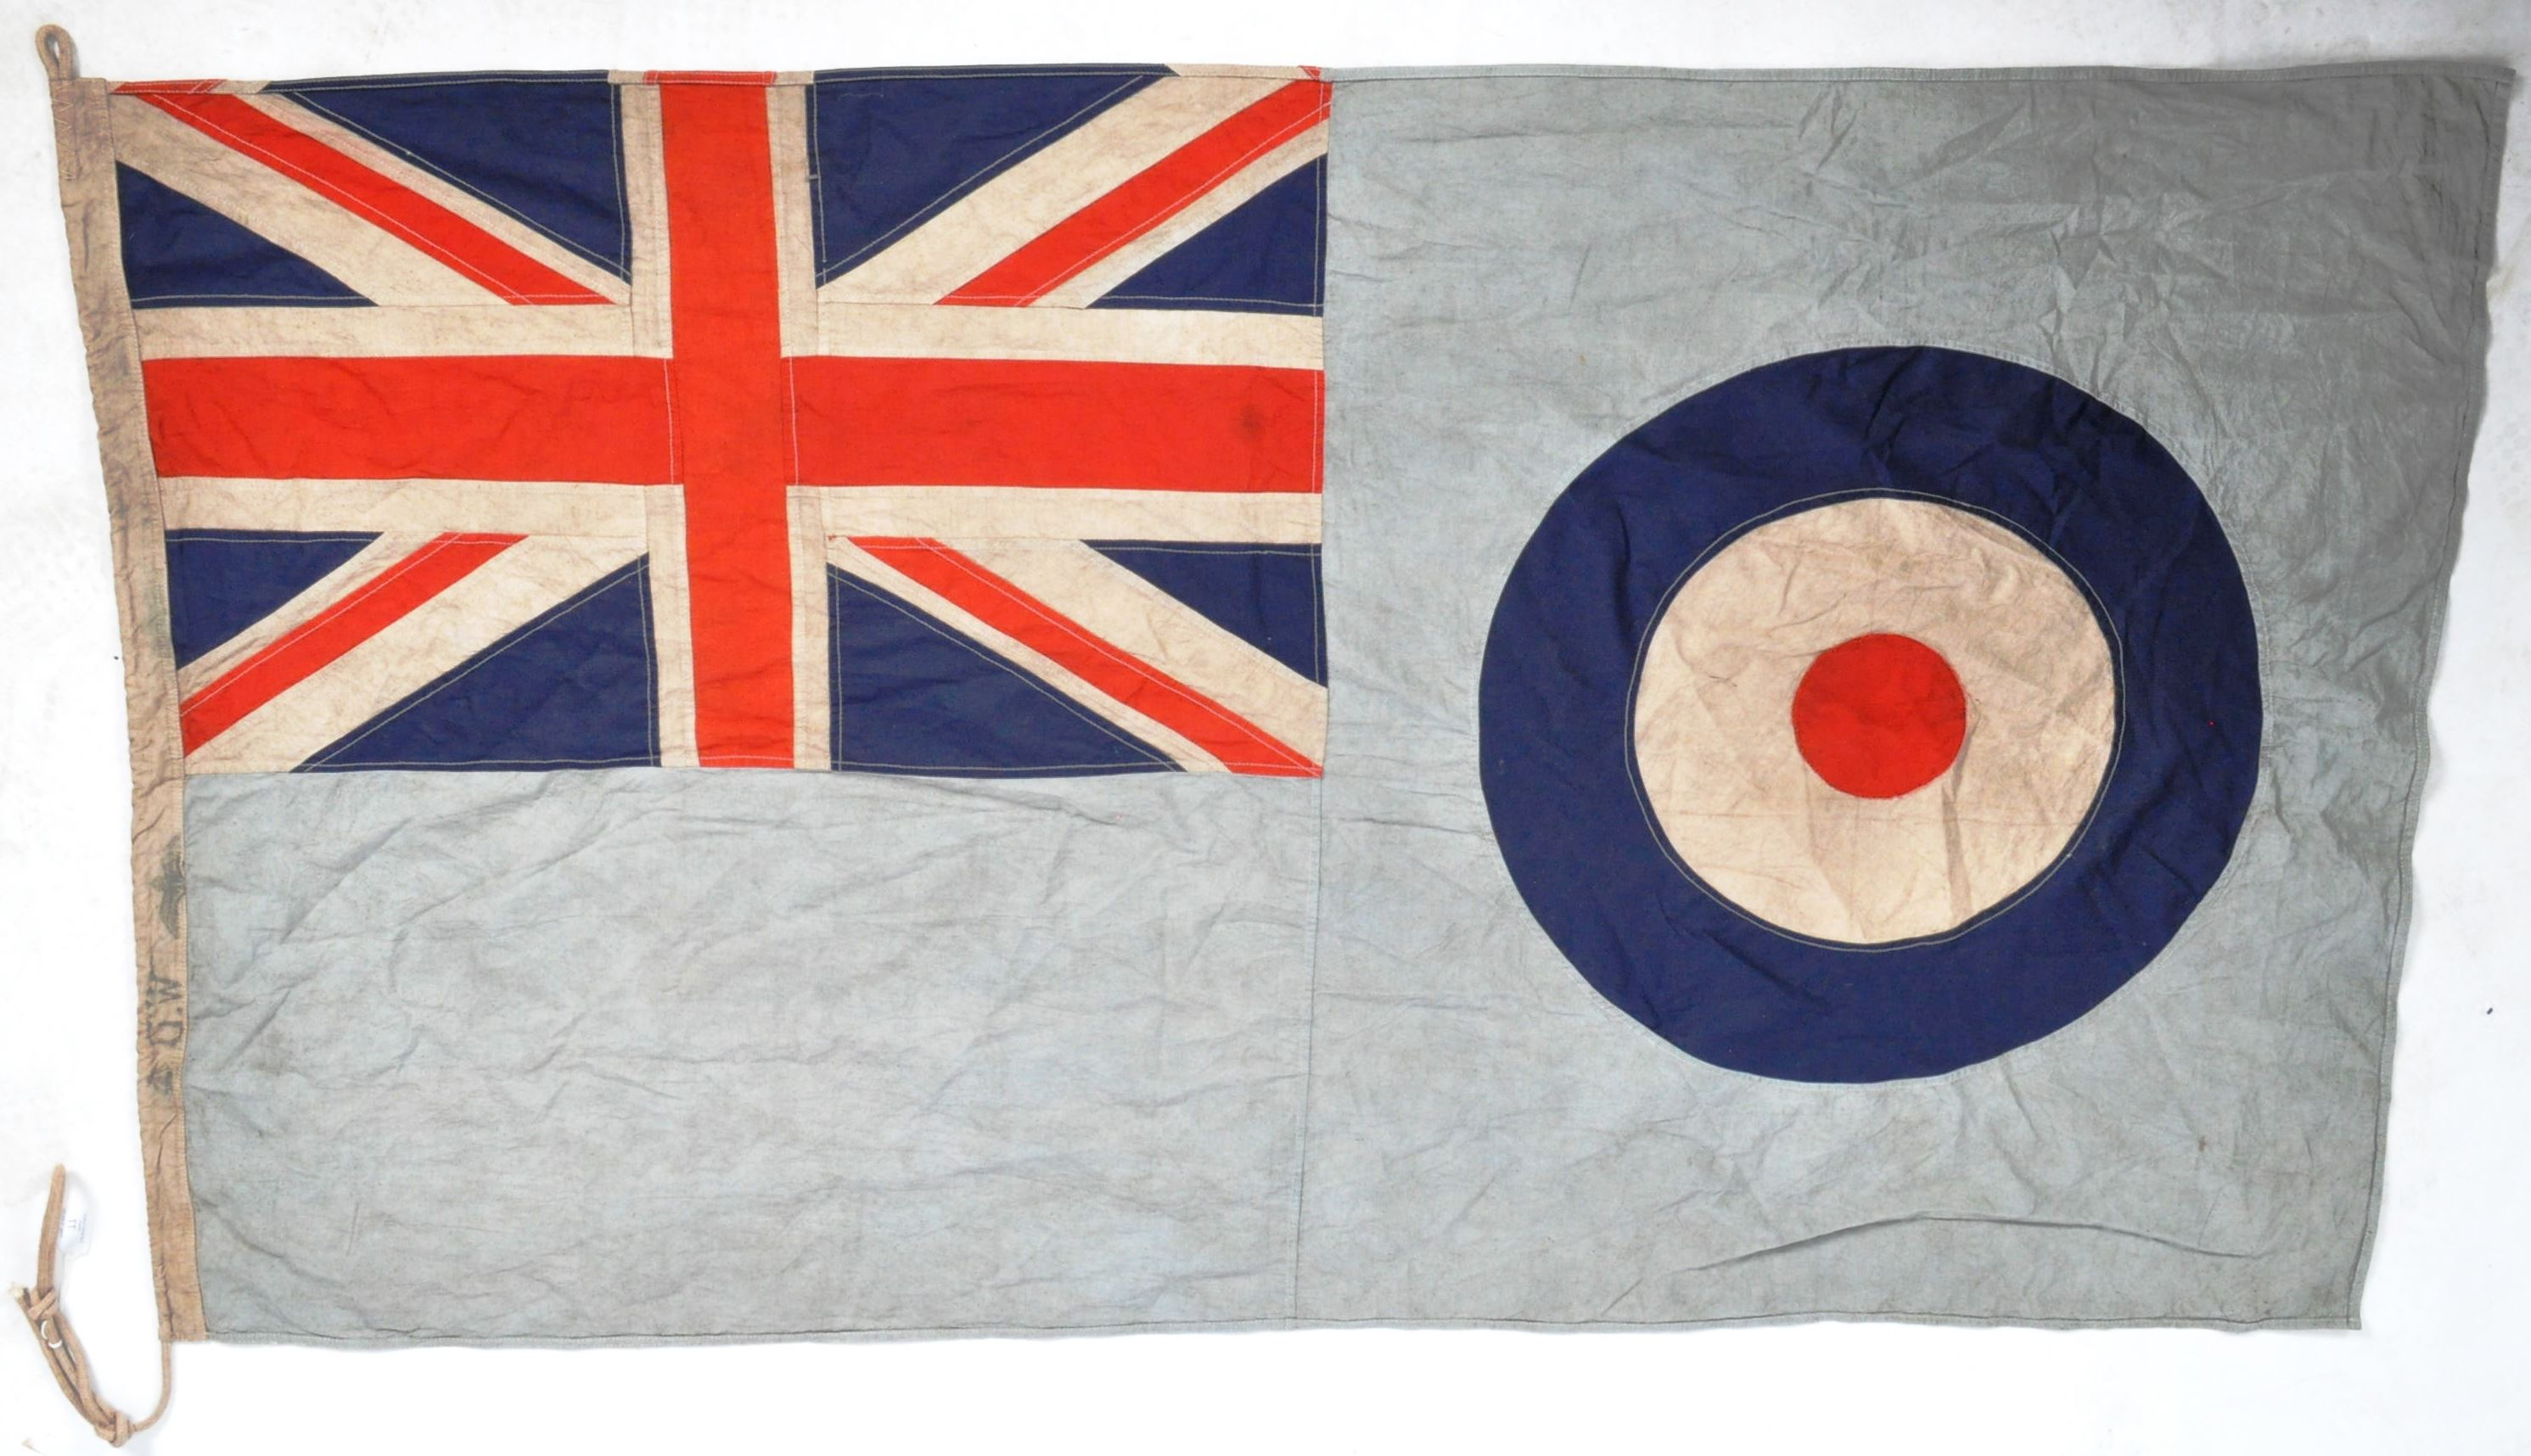 WWII SECOND WORLD WAR TYPE RAF AIRFIELD FLAG - DEBDEN - Image 8 of 8